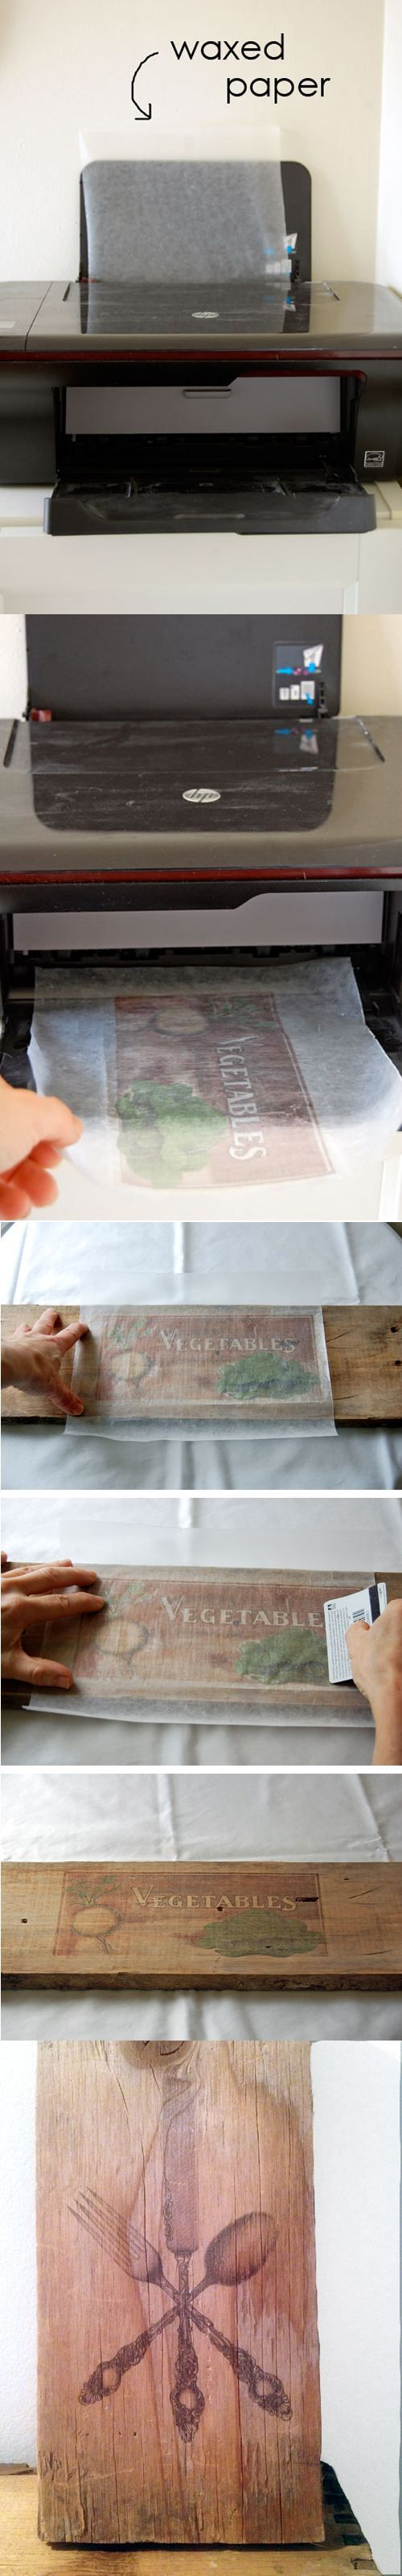 wow!! print images/text on wax paper and scrape the back of the image onto wood to transfer the image.